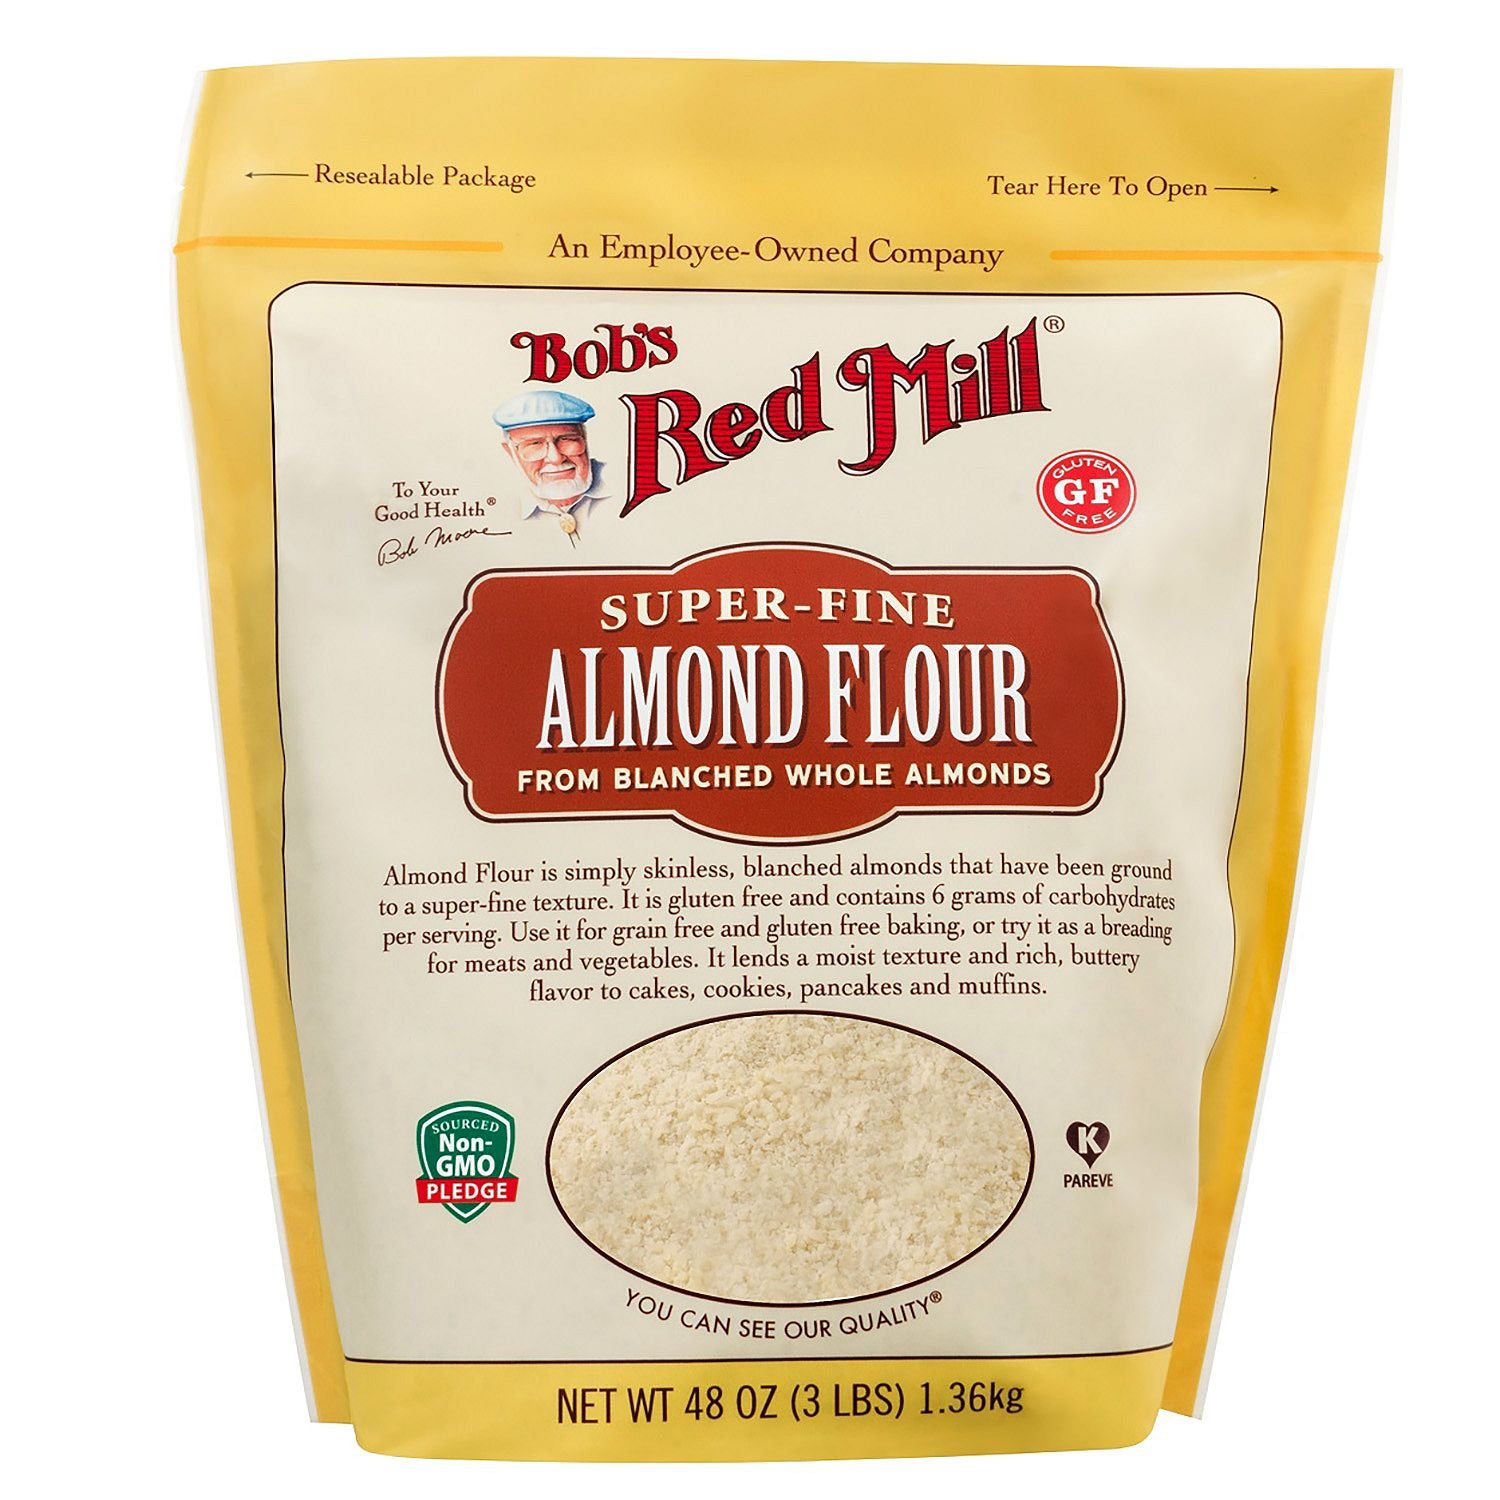 Bob's Red Mill Almond Flour 3 lbs (Pack of 3) by Bob's Red Mill (Image #1)